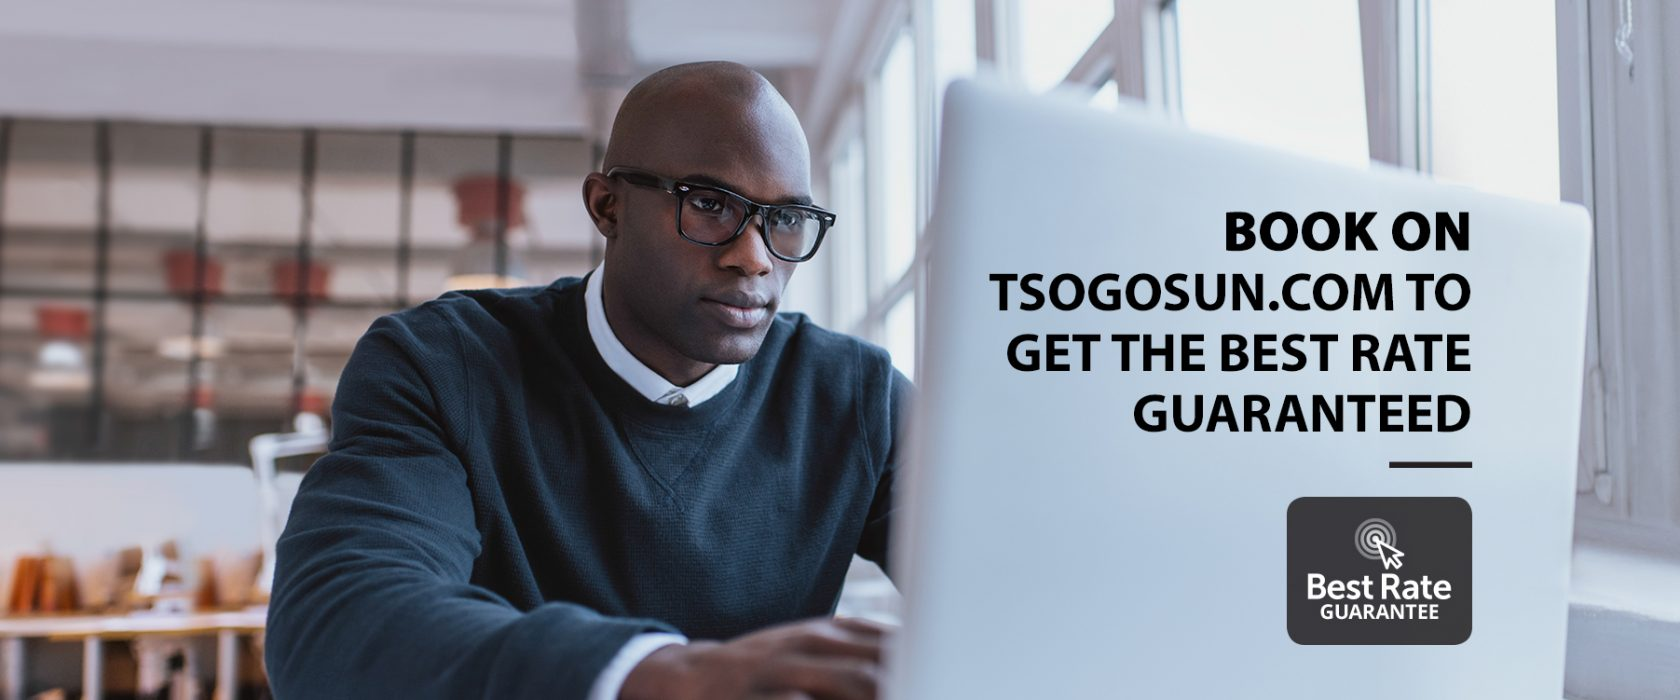 Tsogo Sun Best Rate Guarantee